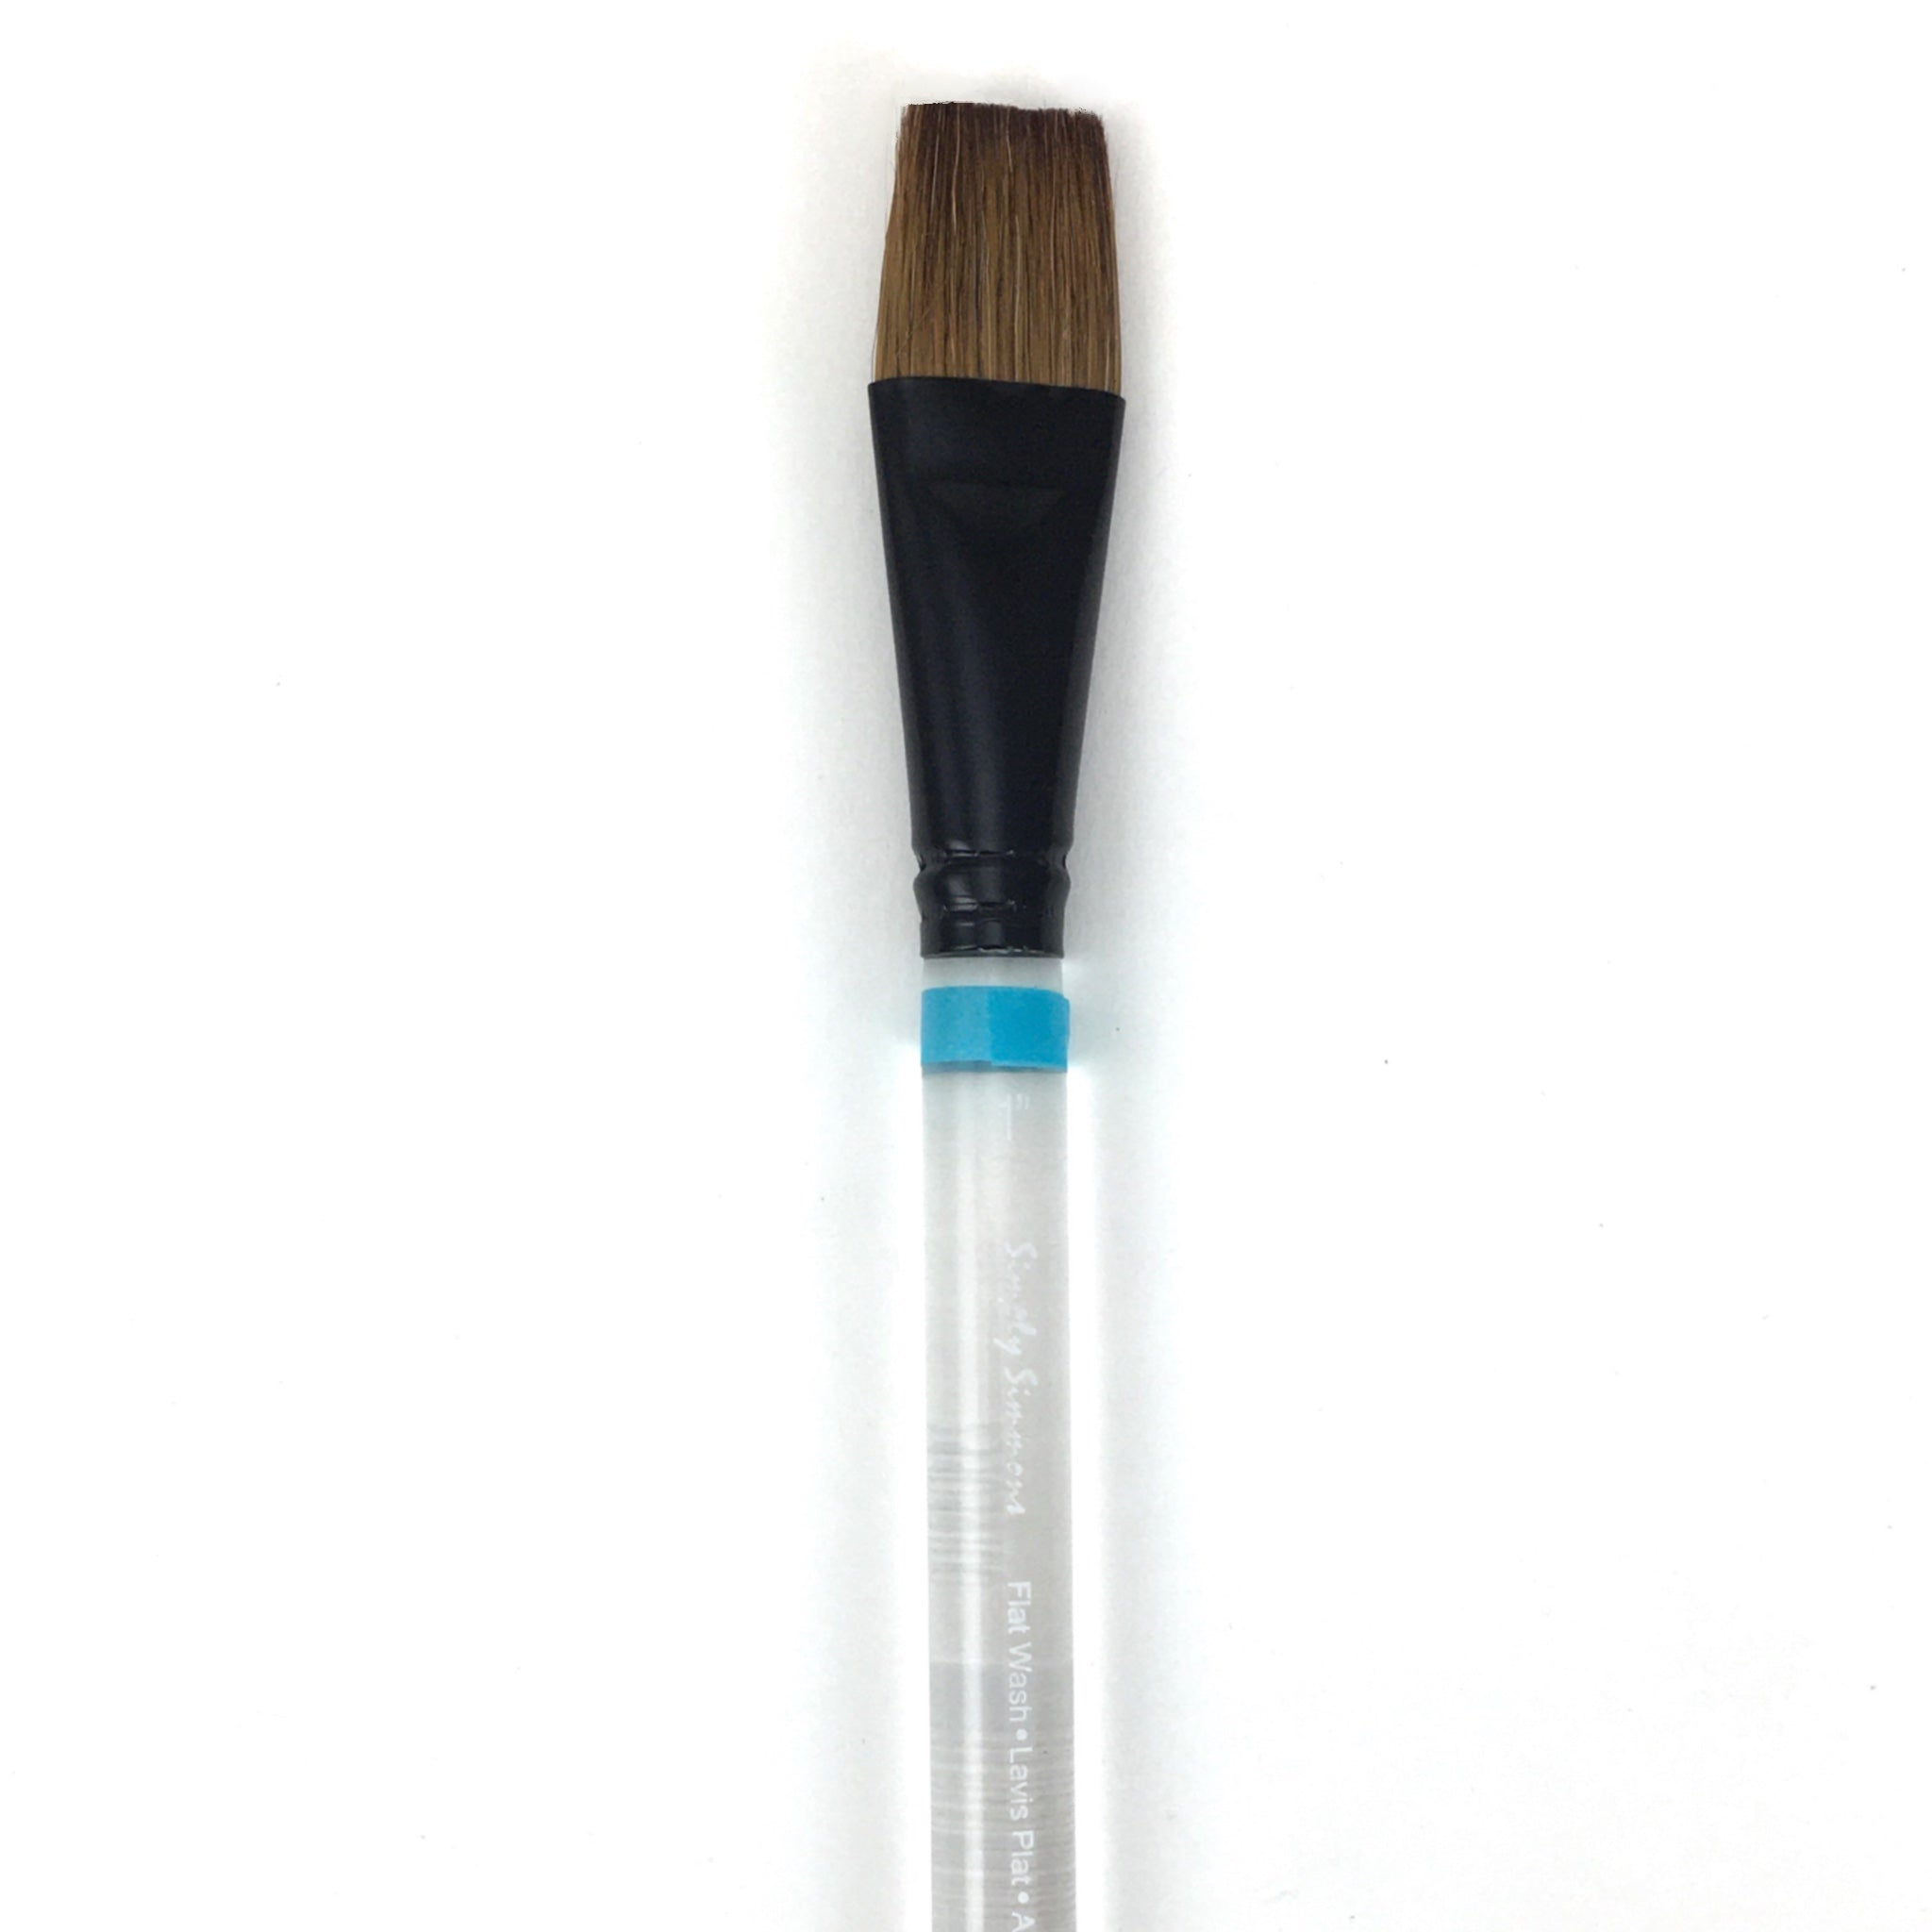 Robert Simmons Simply Simmons Watercolor Brush (Short Handle) - Flat Wash / - 1 inches / - natural by Robert Simmons - K. A. Artist Shop